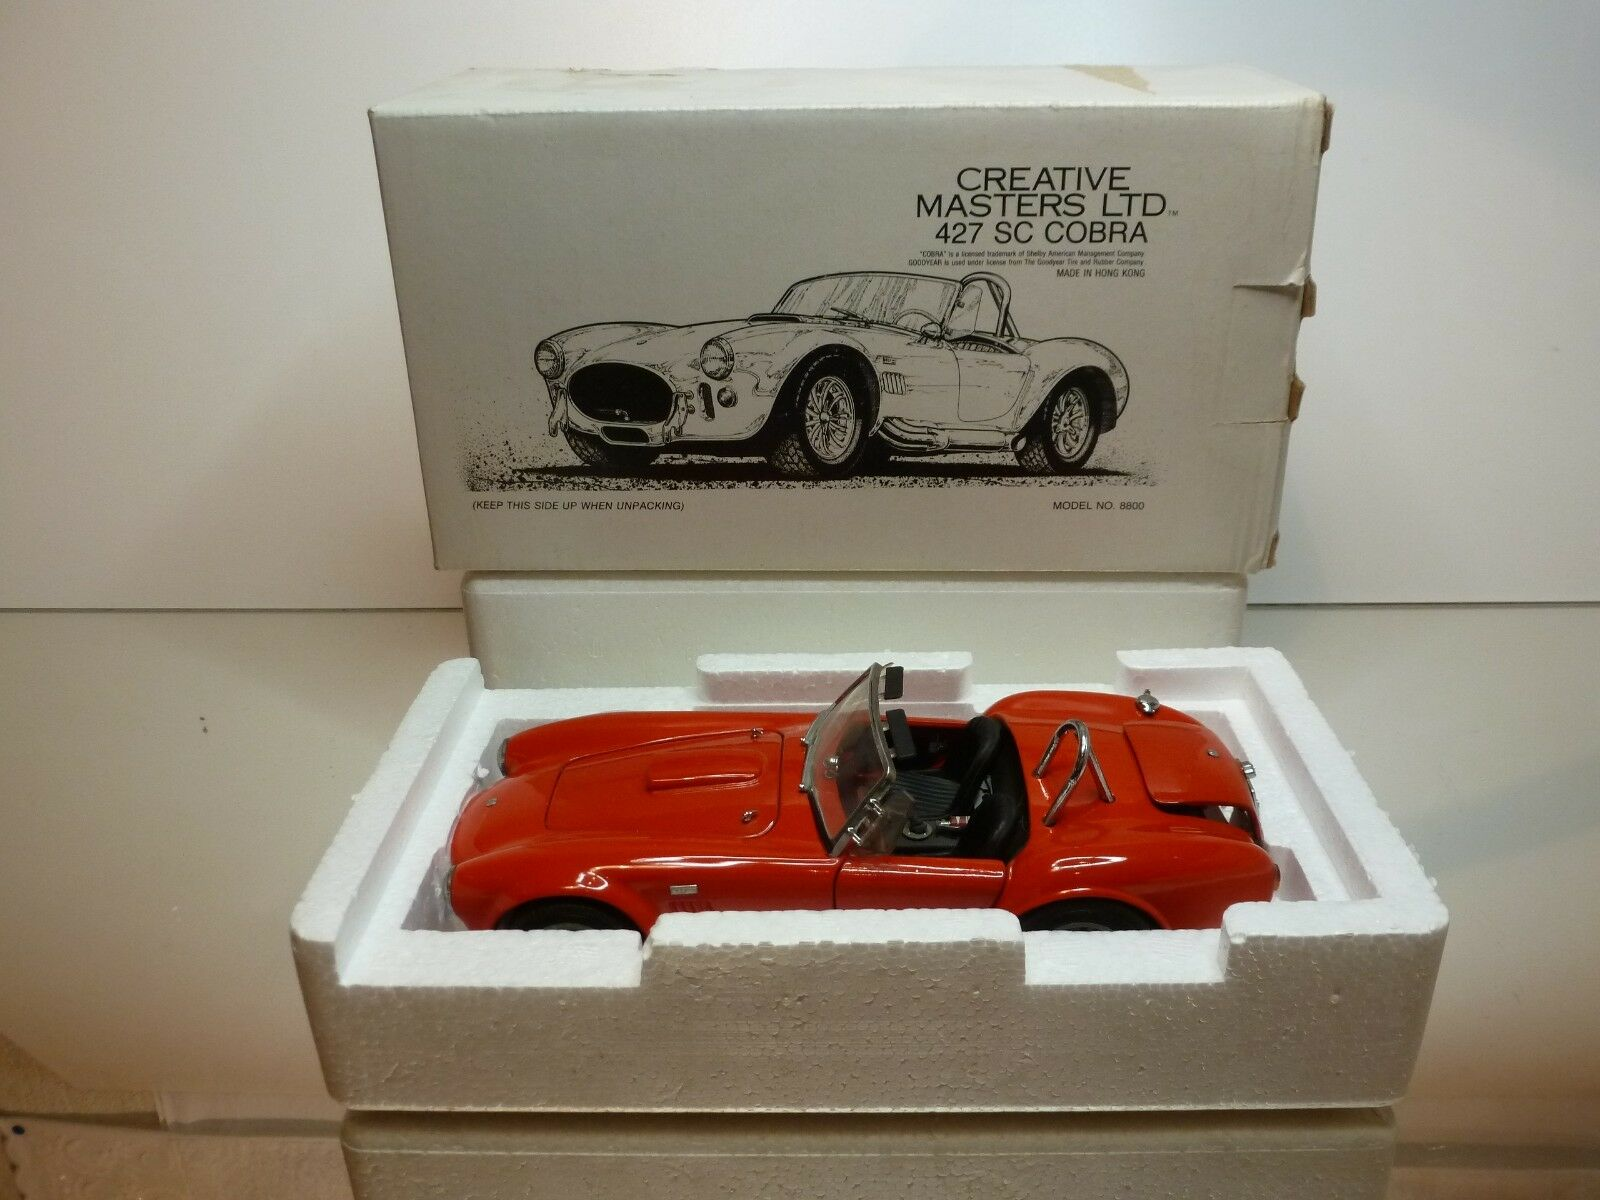 REVELL CREATIVE MASTERS 427 SC COBRA - RED 1 20 - GOOD CONDITION